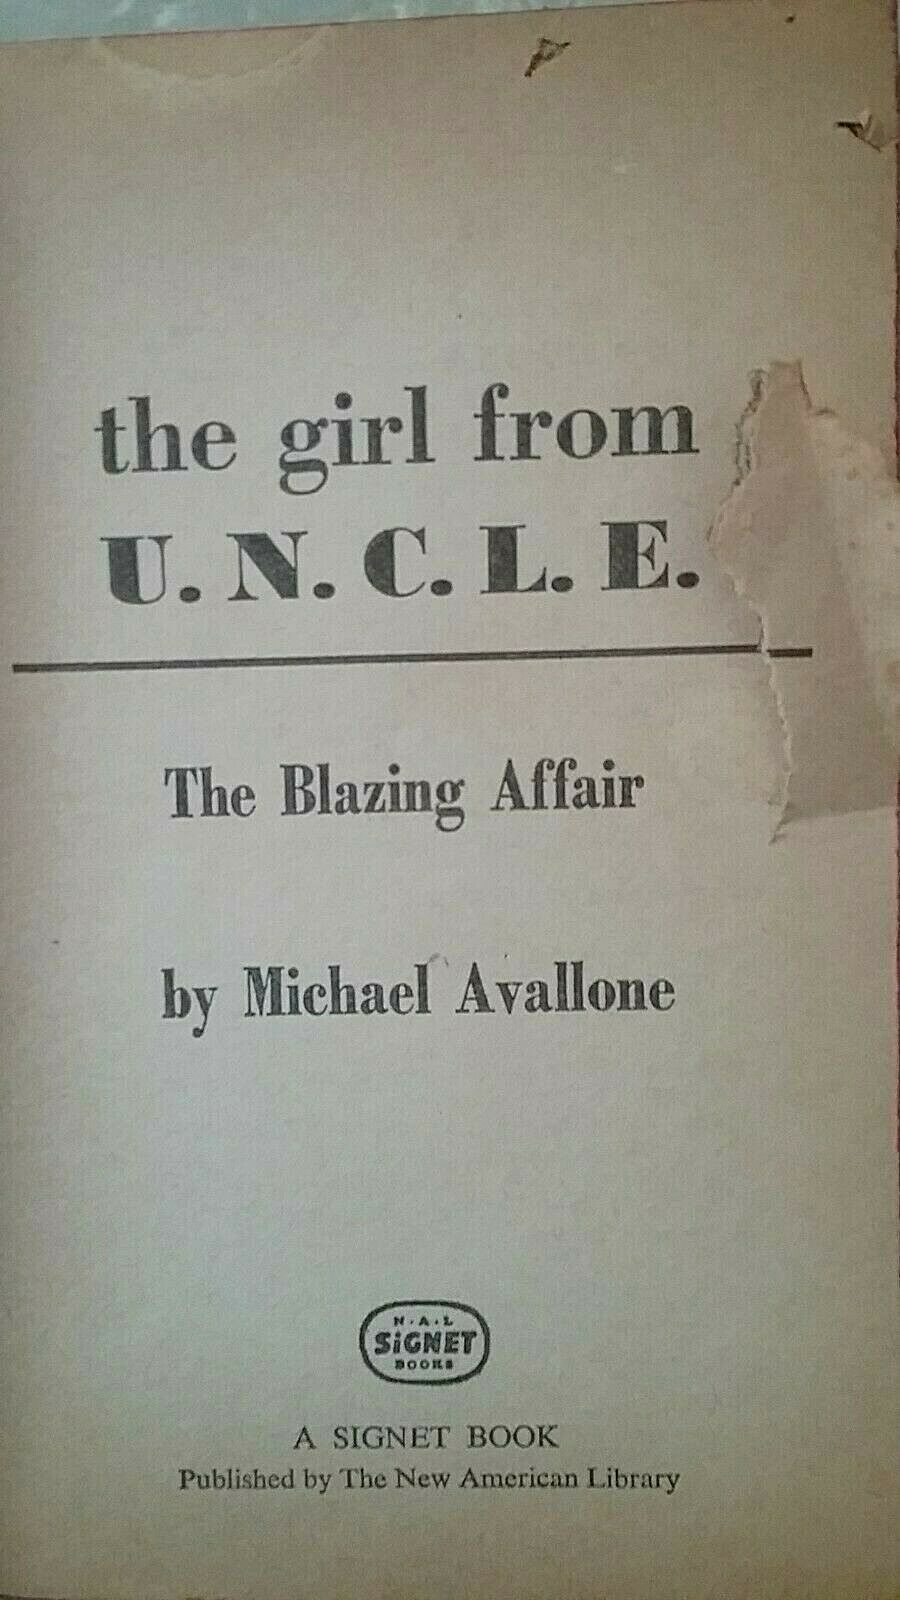 GIRL FROM U.N.C.L.E. #2 (PB 1st printing) The Blazing Affair by Michael Avallone |